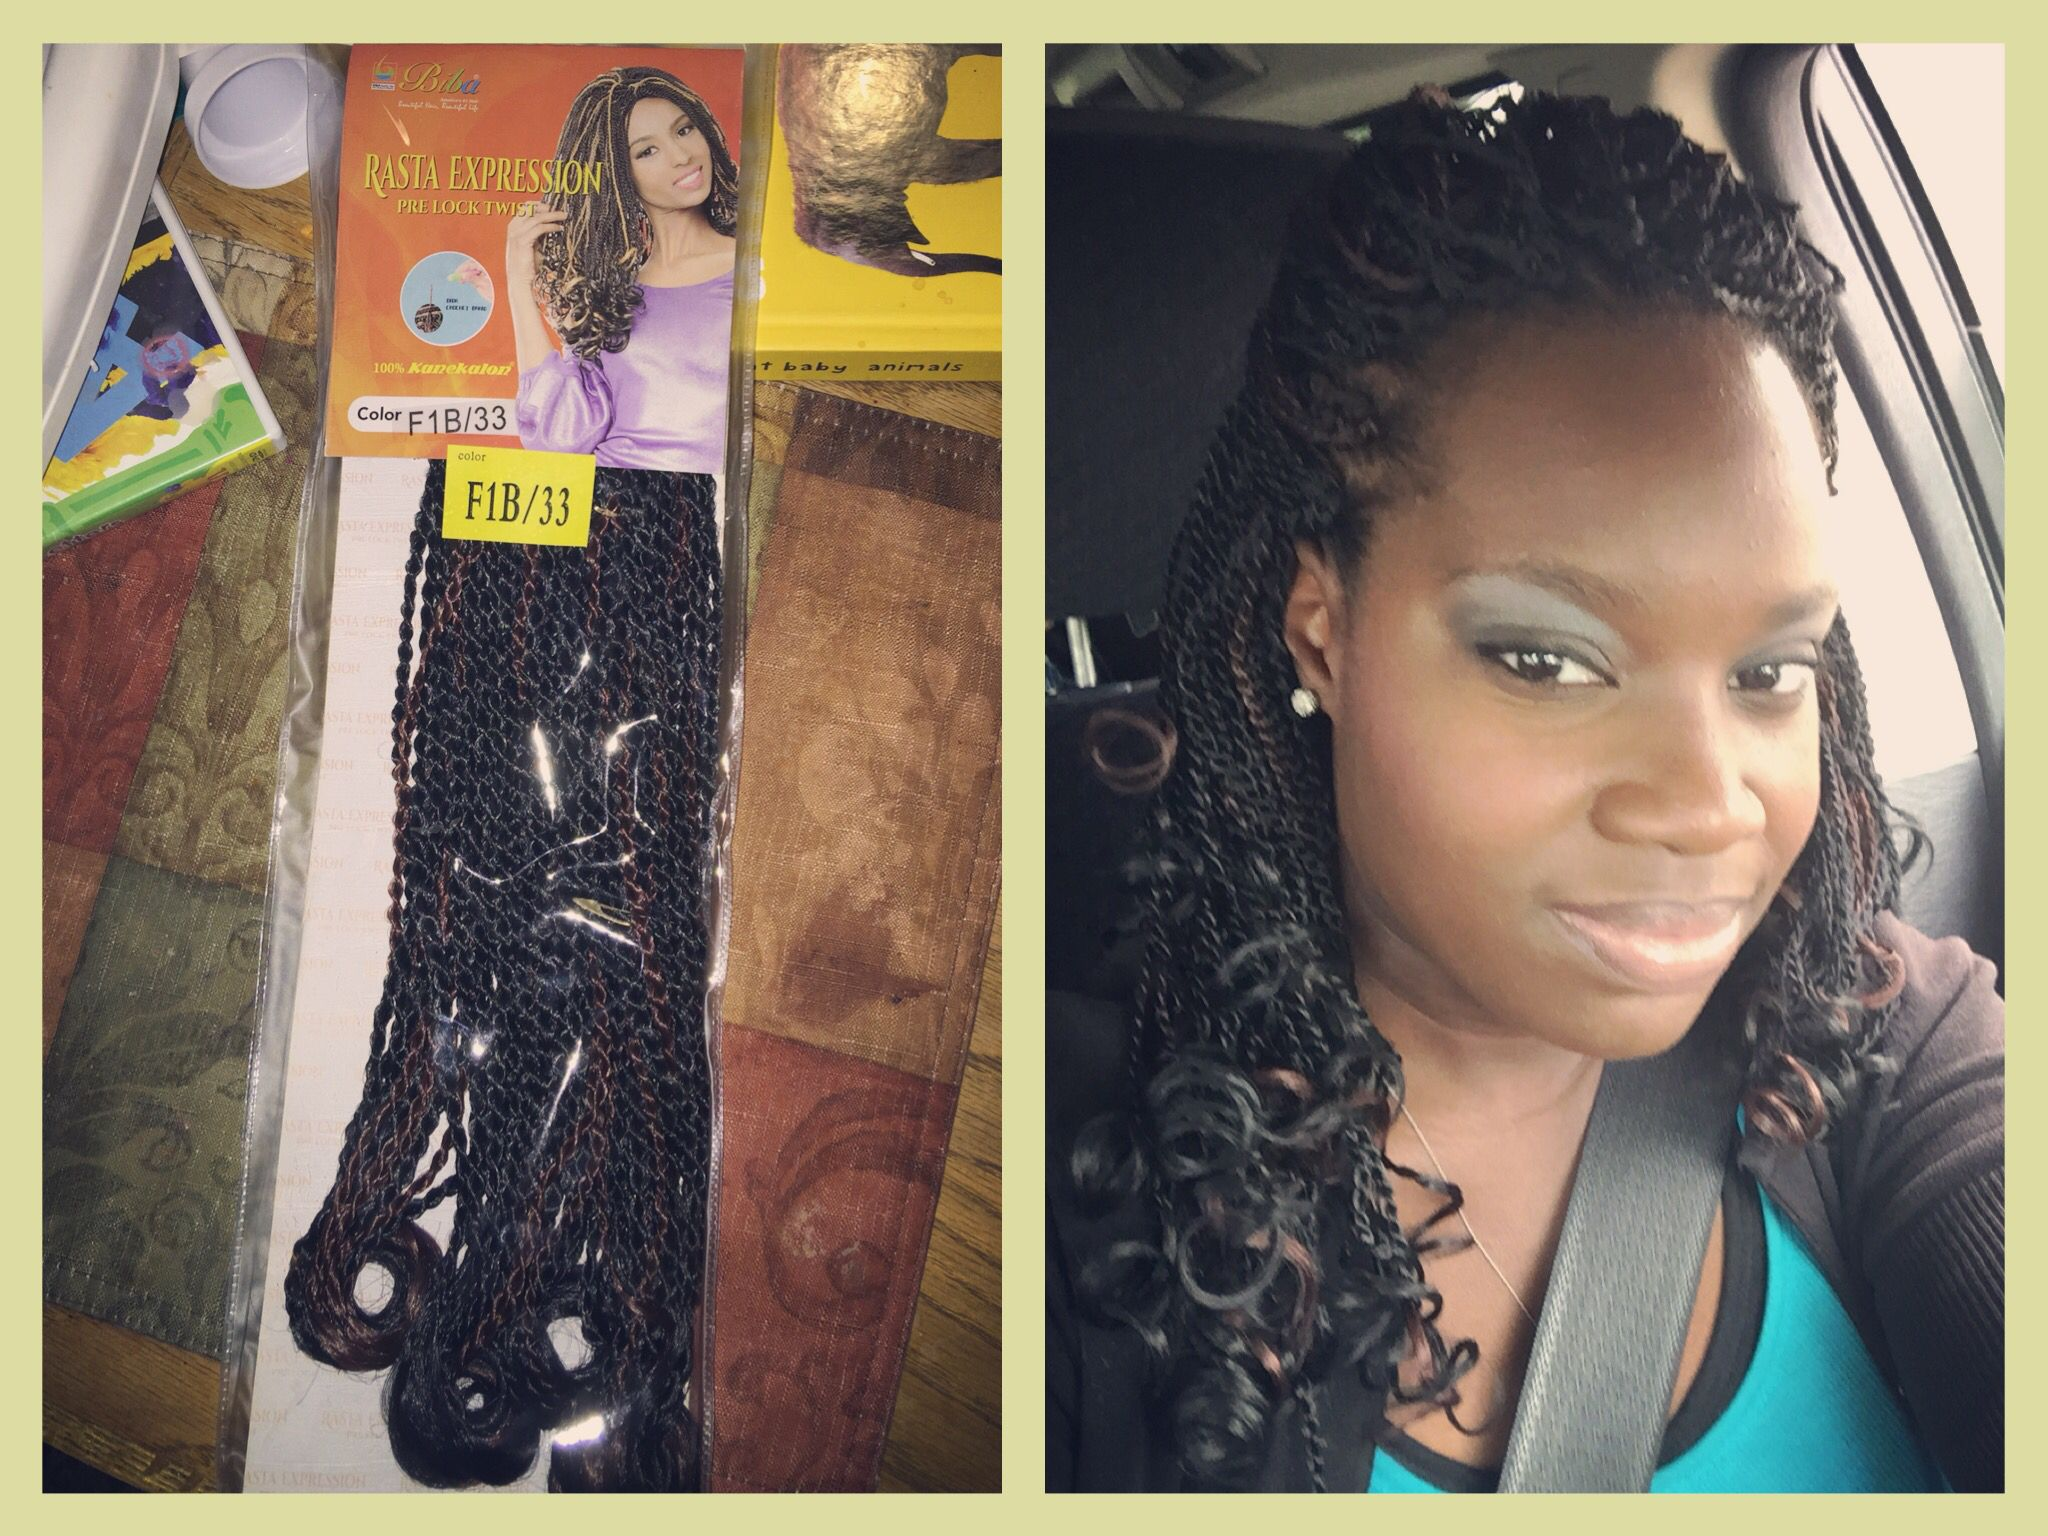 Crochet Braids Pre Lock Twists Already Curled At The Ends F1b